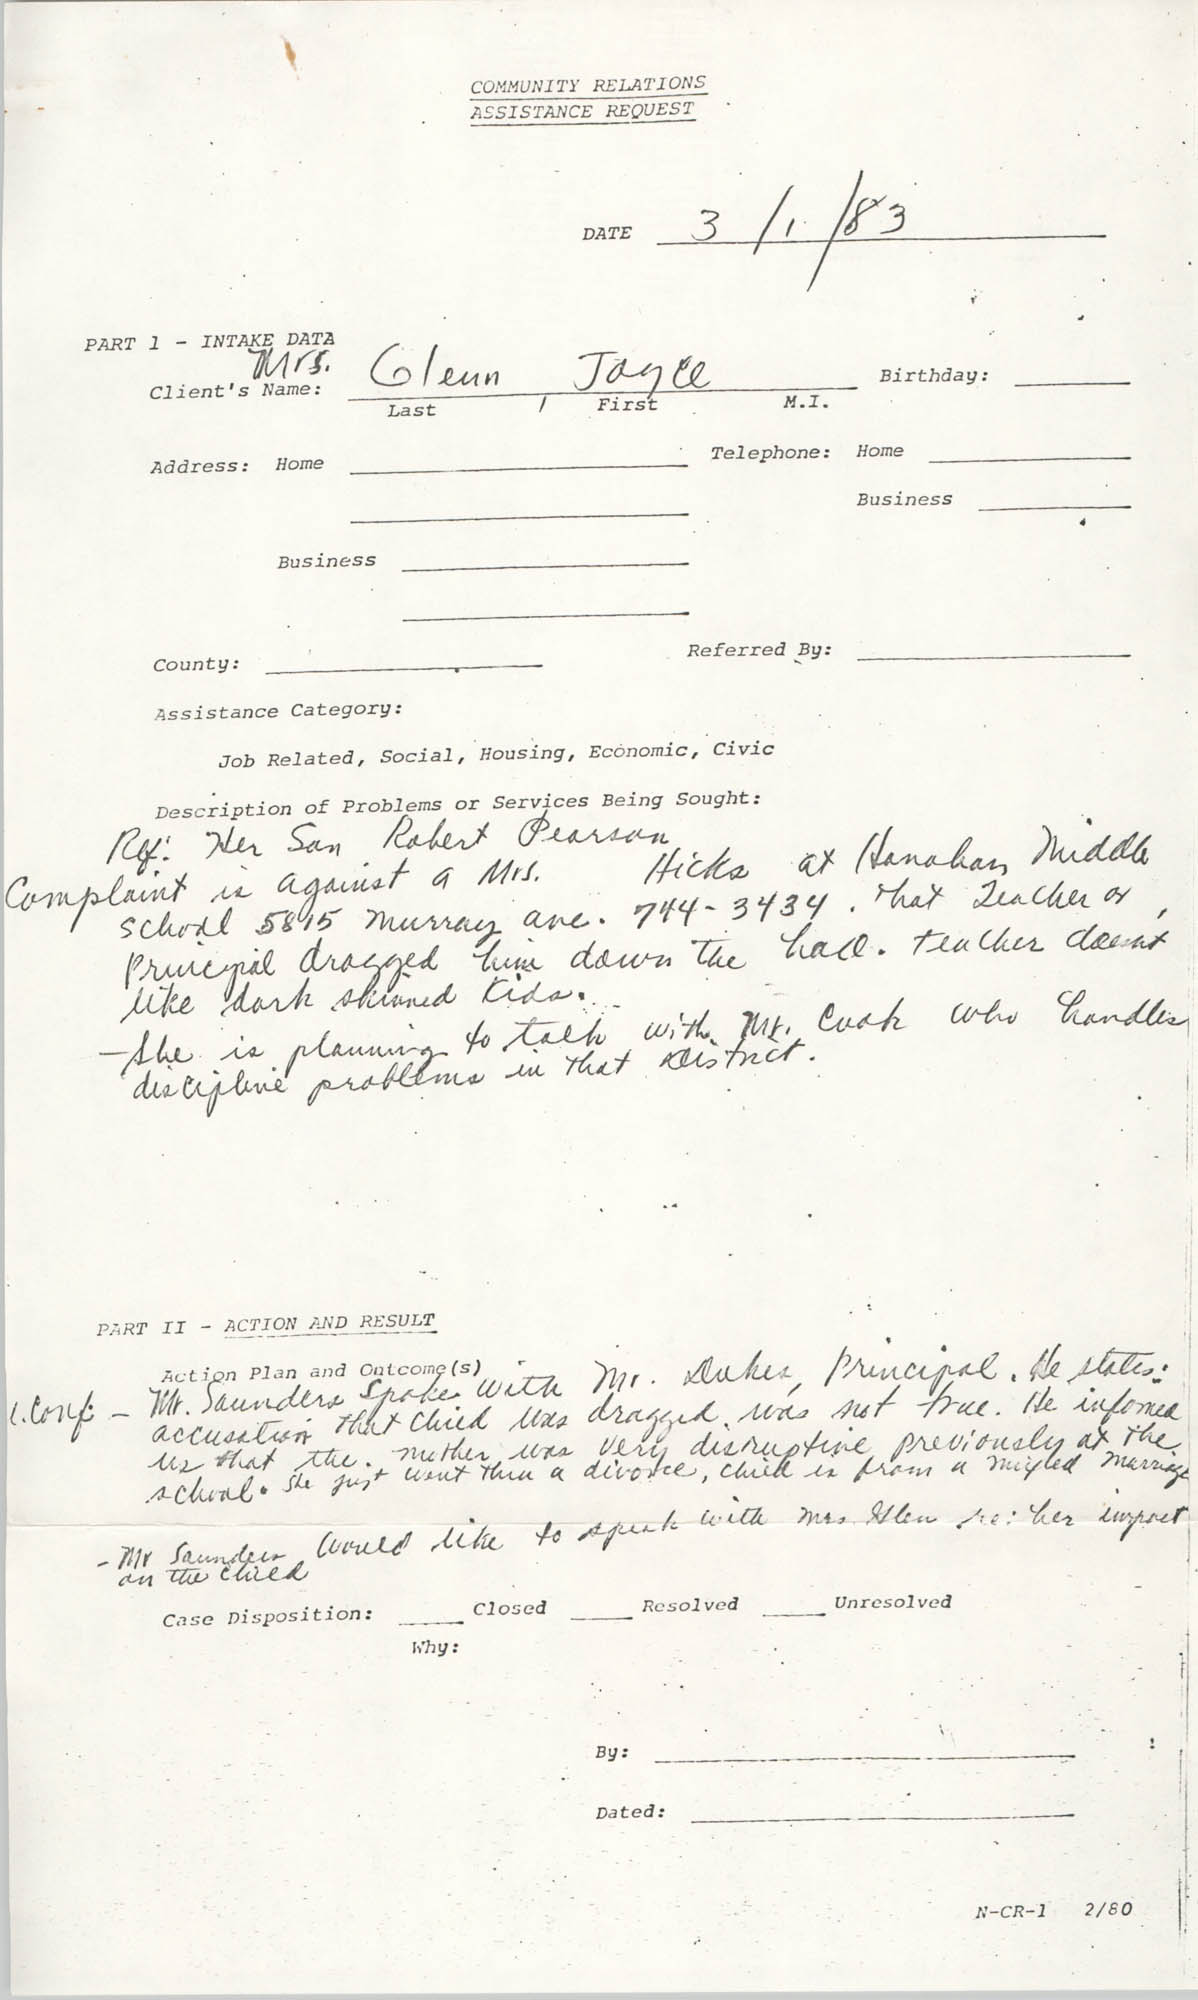 Community Relations Assistance Request, March 1, 1983